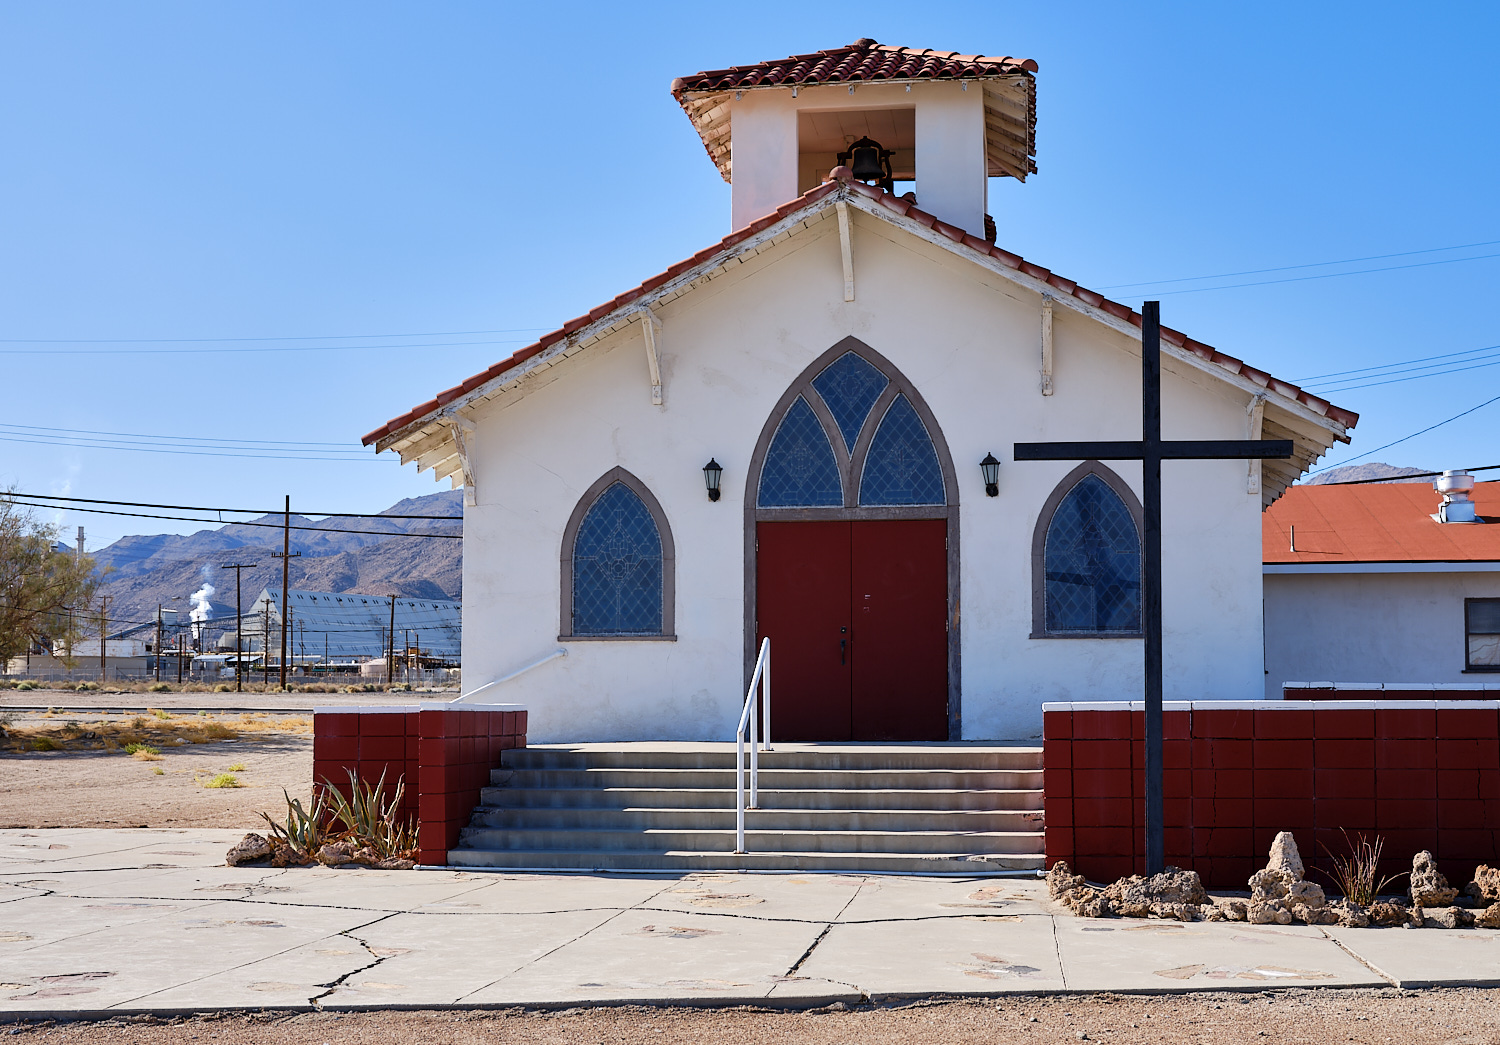 Trona Community Church, Trona, Ca. | Osceola Refetoff